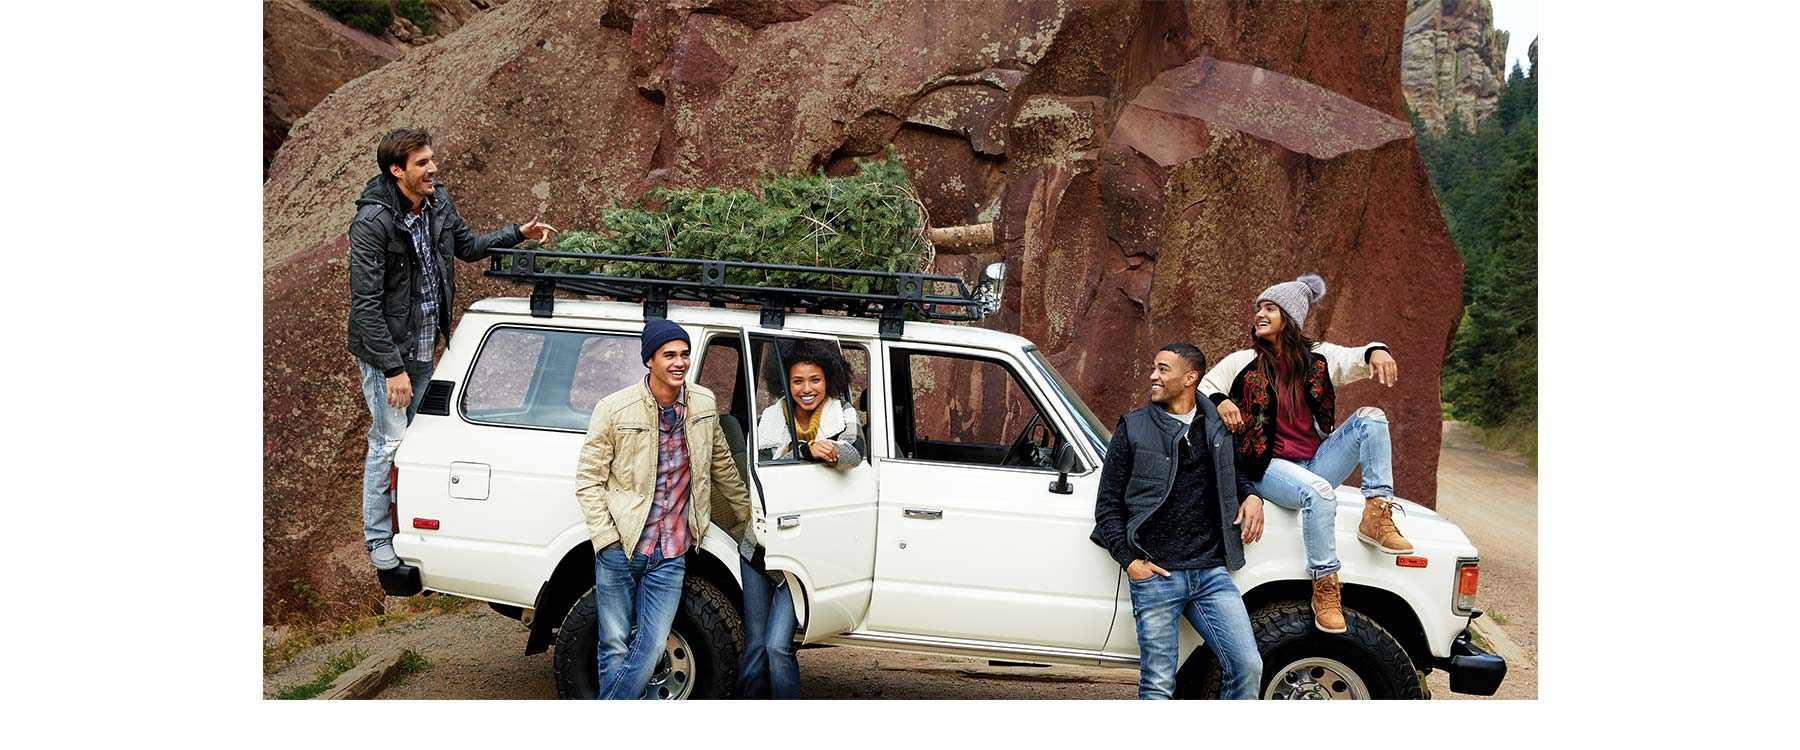 Group of people sitting on and around jeep, hauling a tree on top. All wearing outfits from Buckle's winter collection.